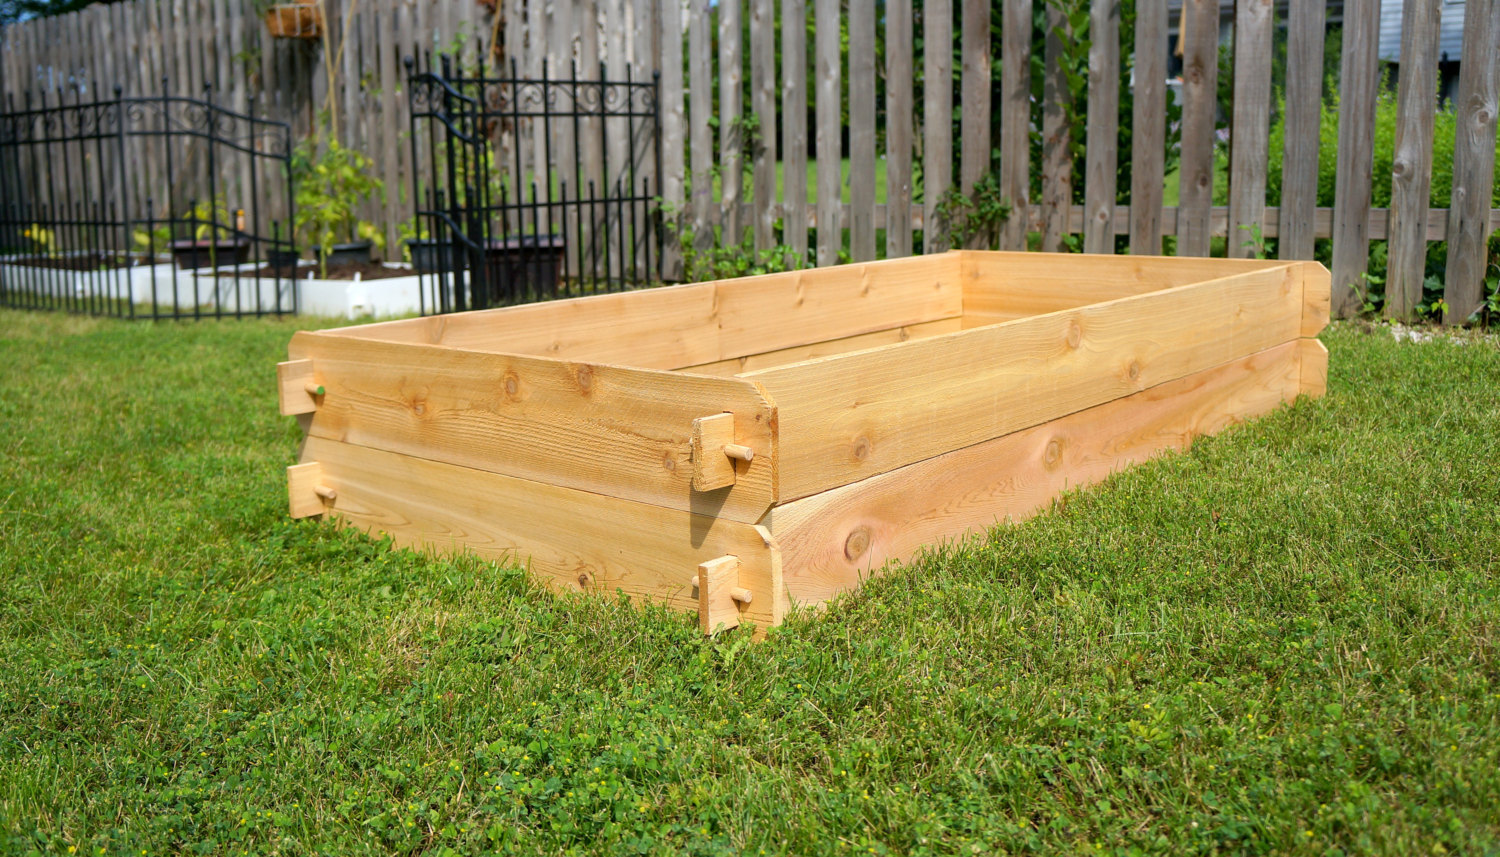 Raised Bed Garden Planter Flower Vegetable Cedar Box Kit Outdoor Plant Gardening